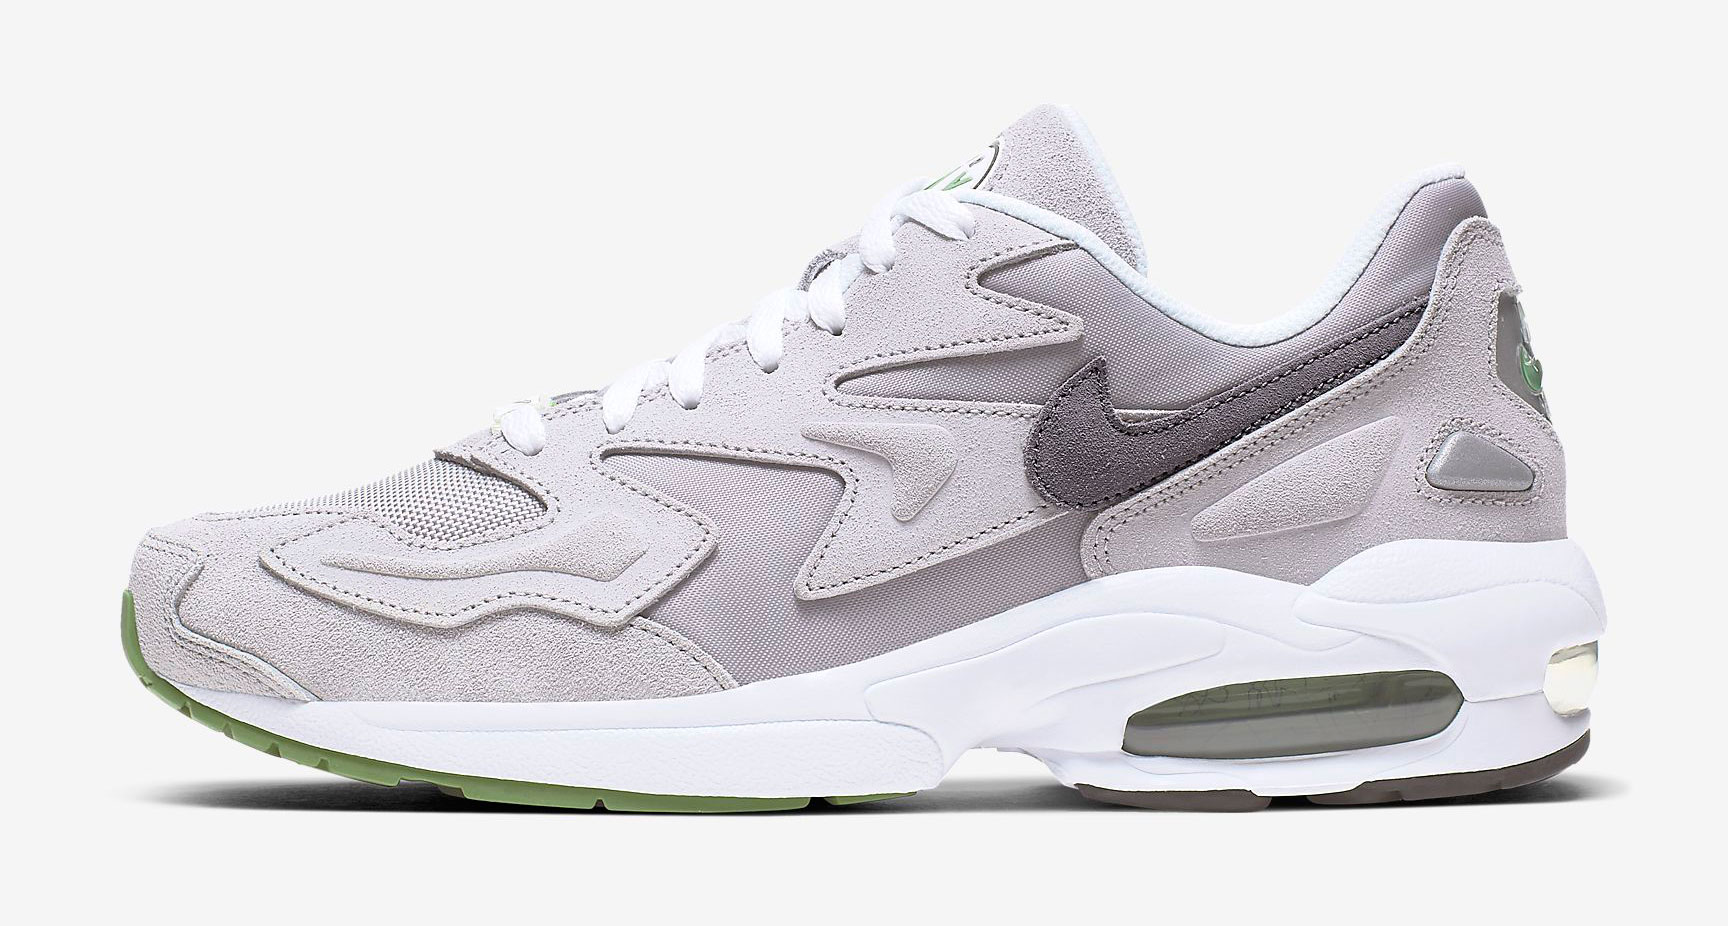 nike-air-max2-light-lx-atmosphere-grey-chlorophyll-release-date